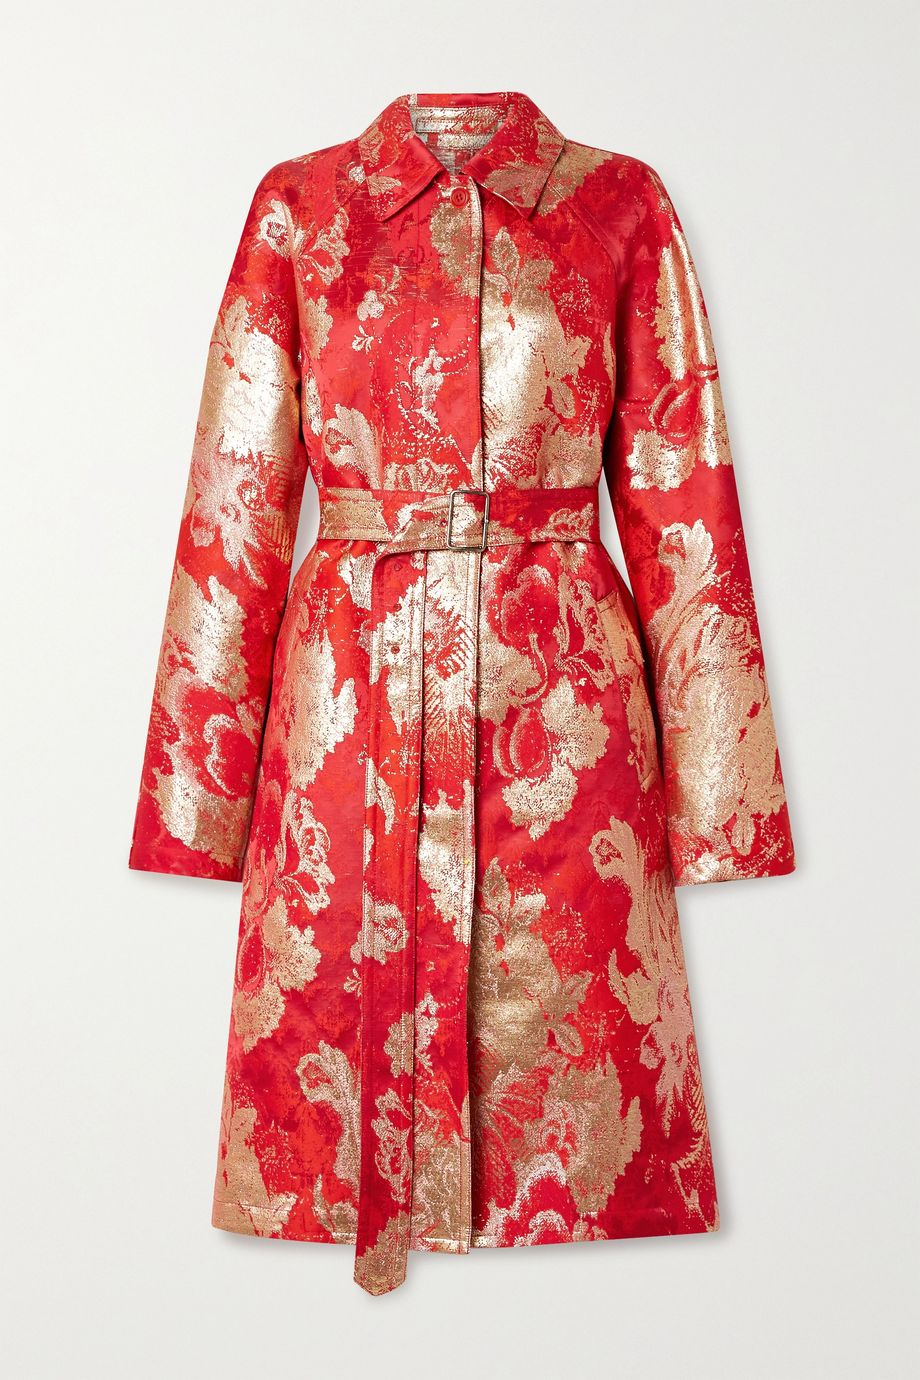 Dries Van Noten Belted metallic brocade coat